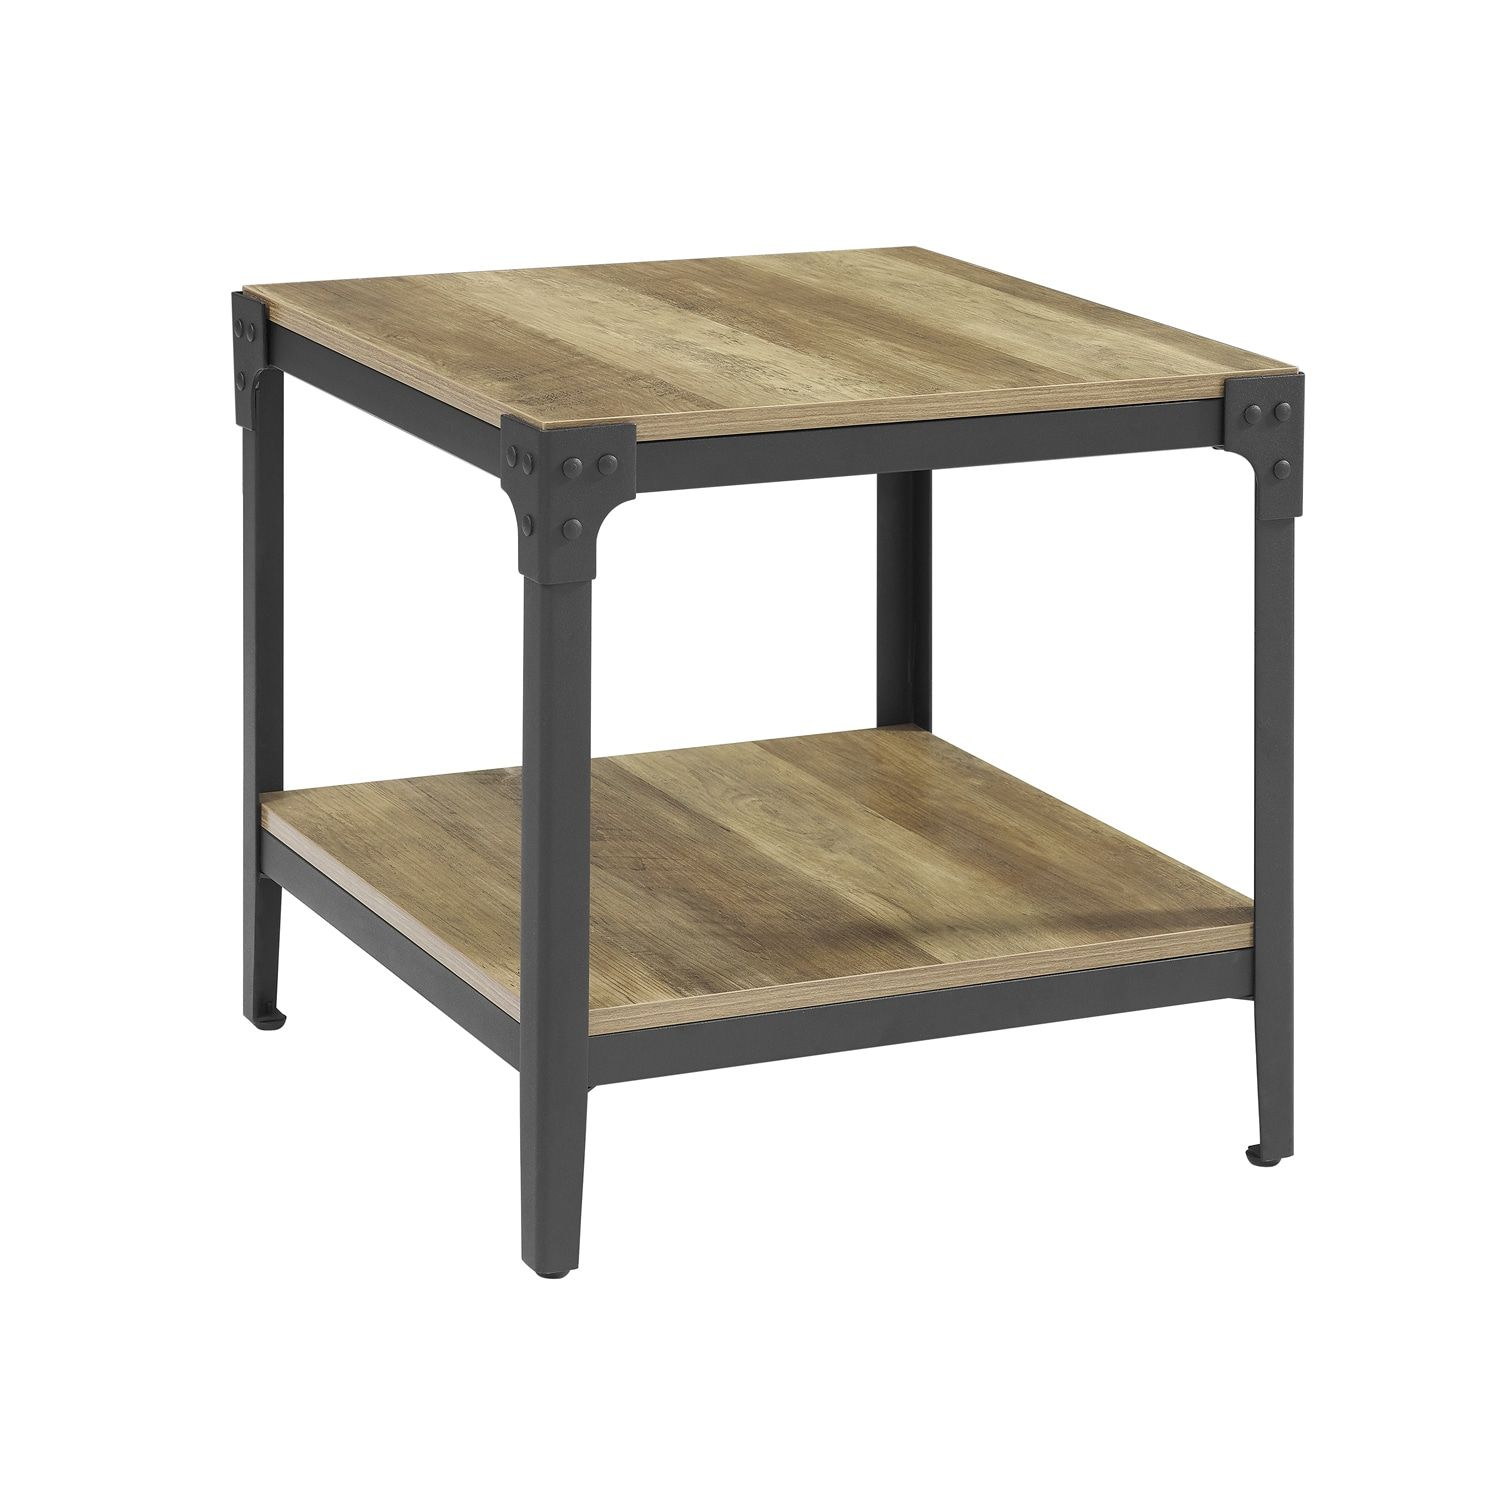 Rustic Angle Rustic Oak End Table Set Of 2 End Tables Oak End